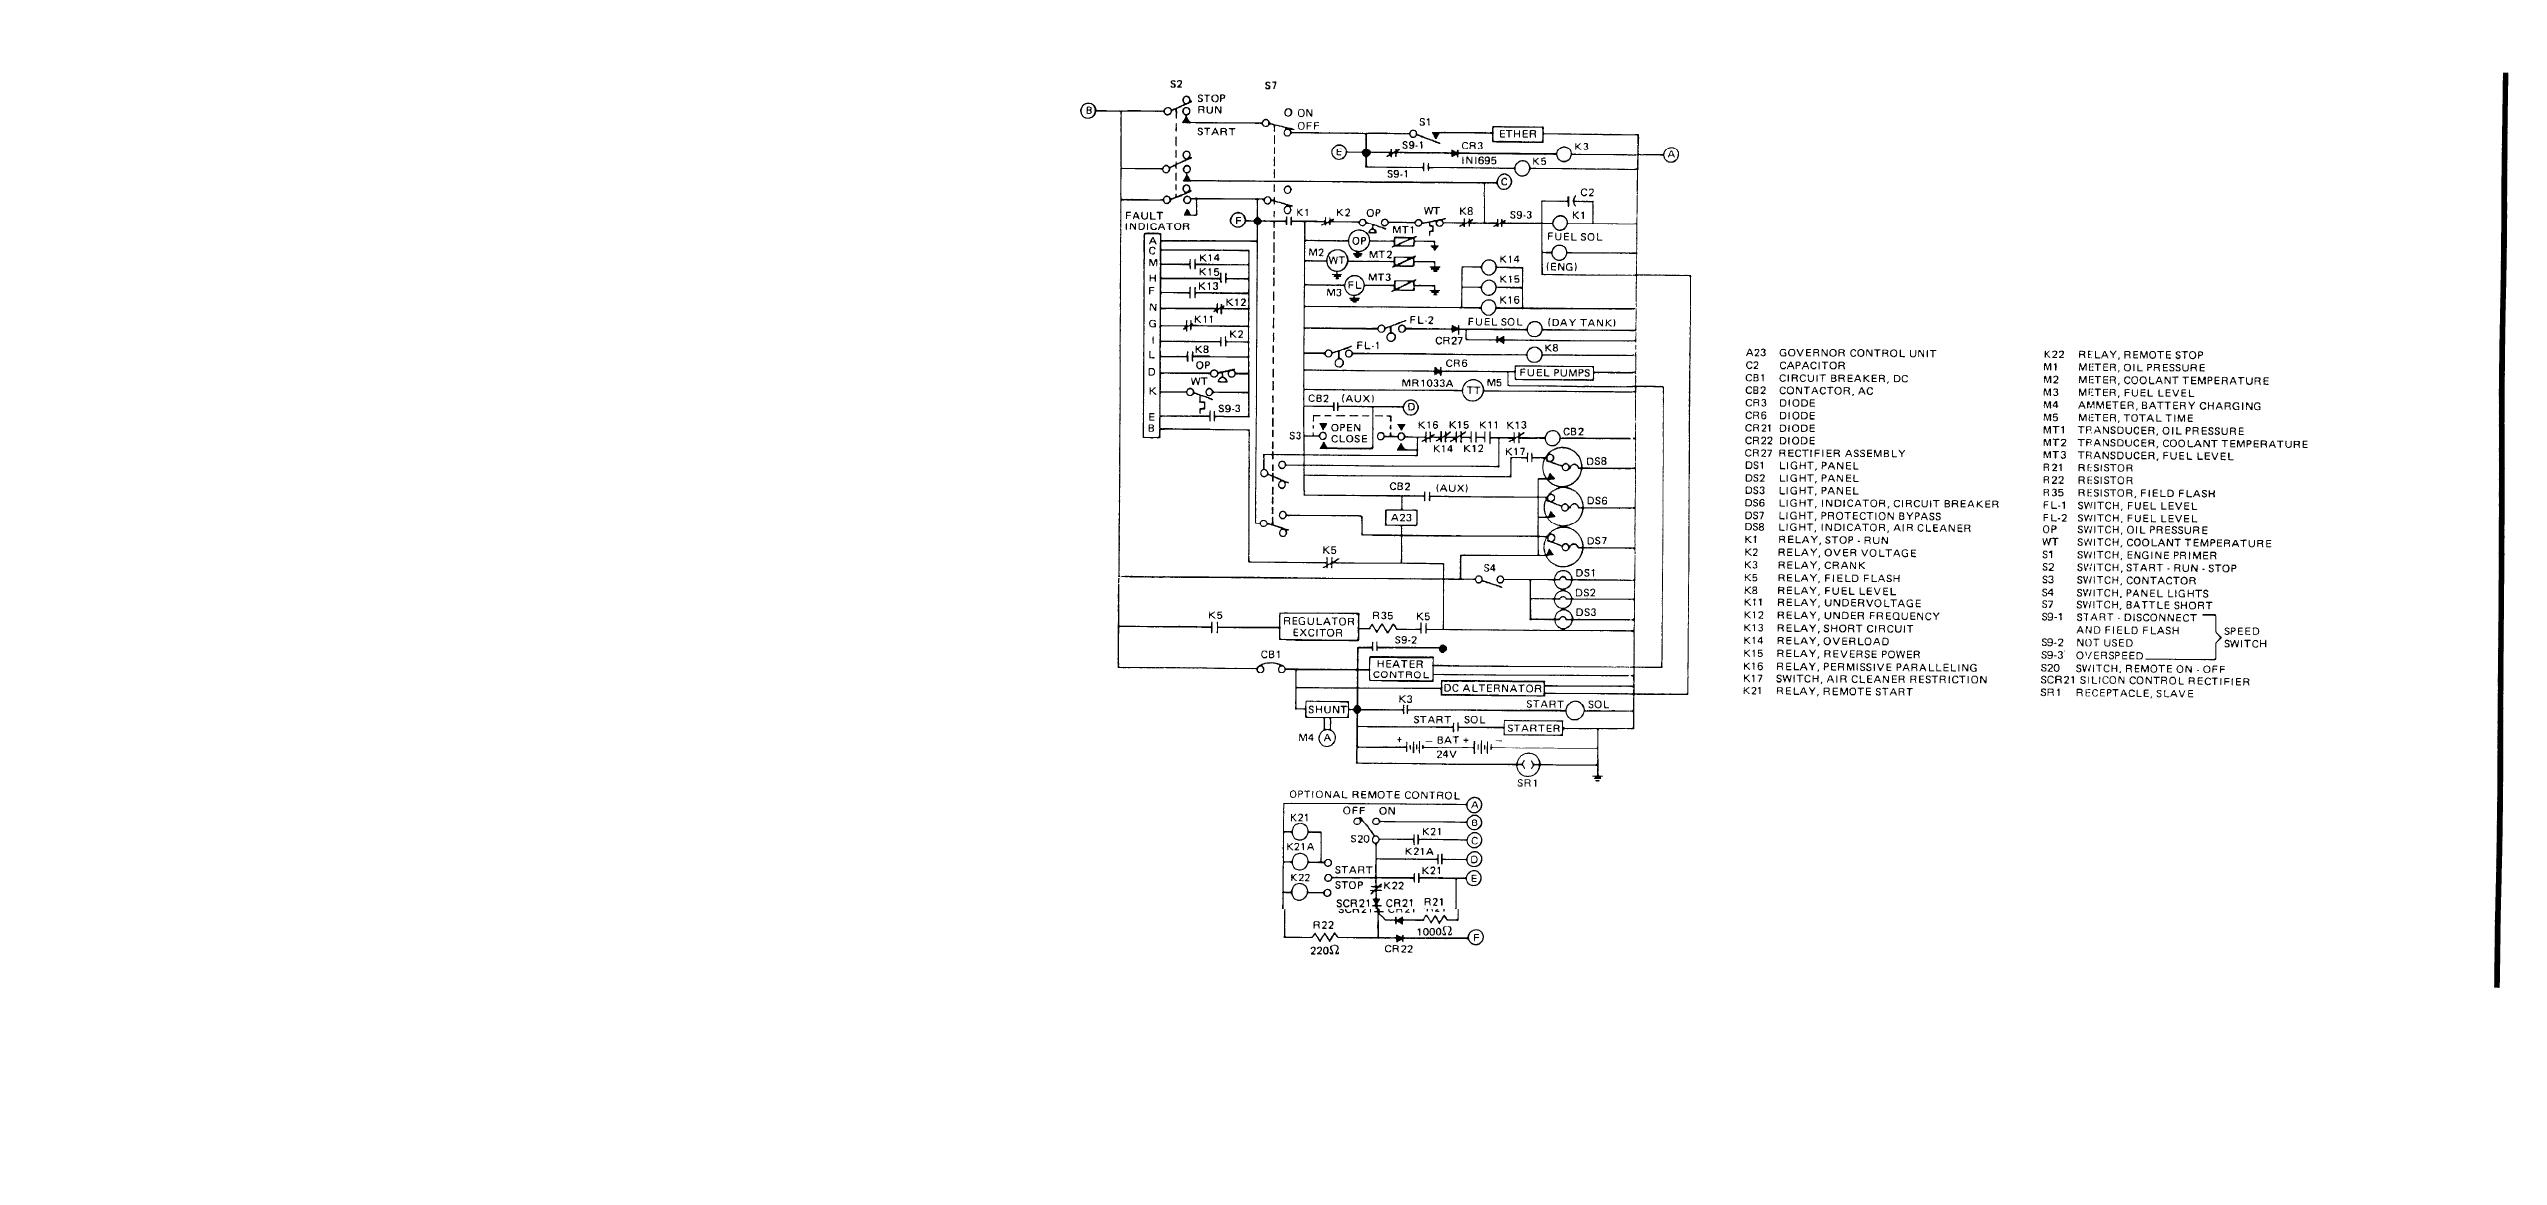 FO-3. DC Schematic Diagram, 15 and 30 KW, Precise